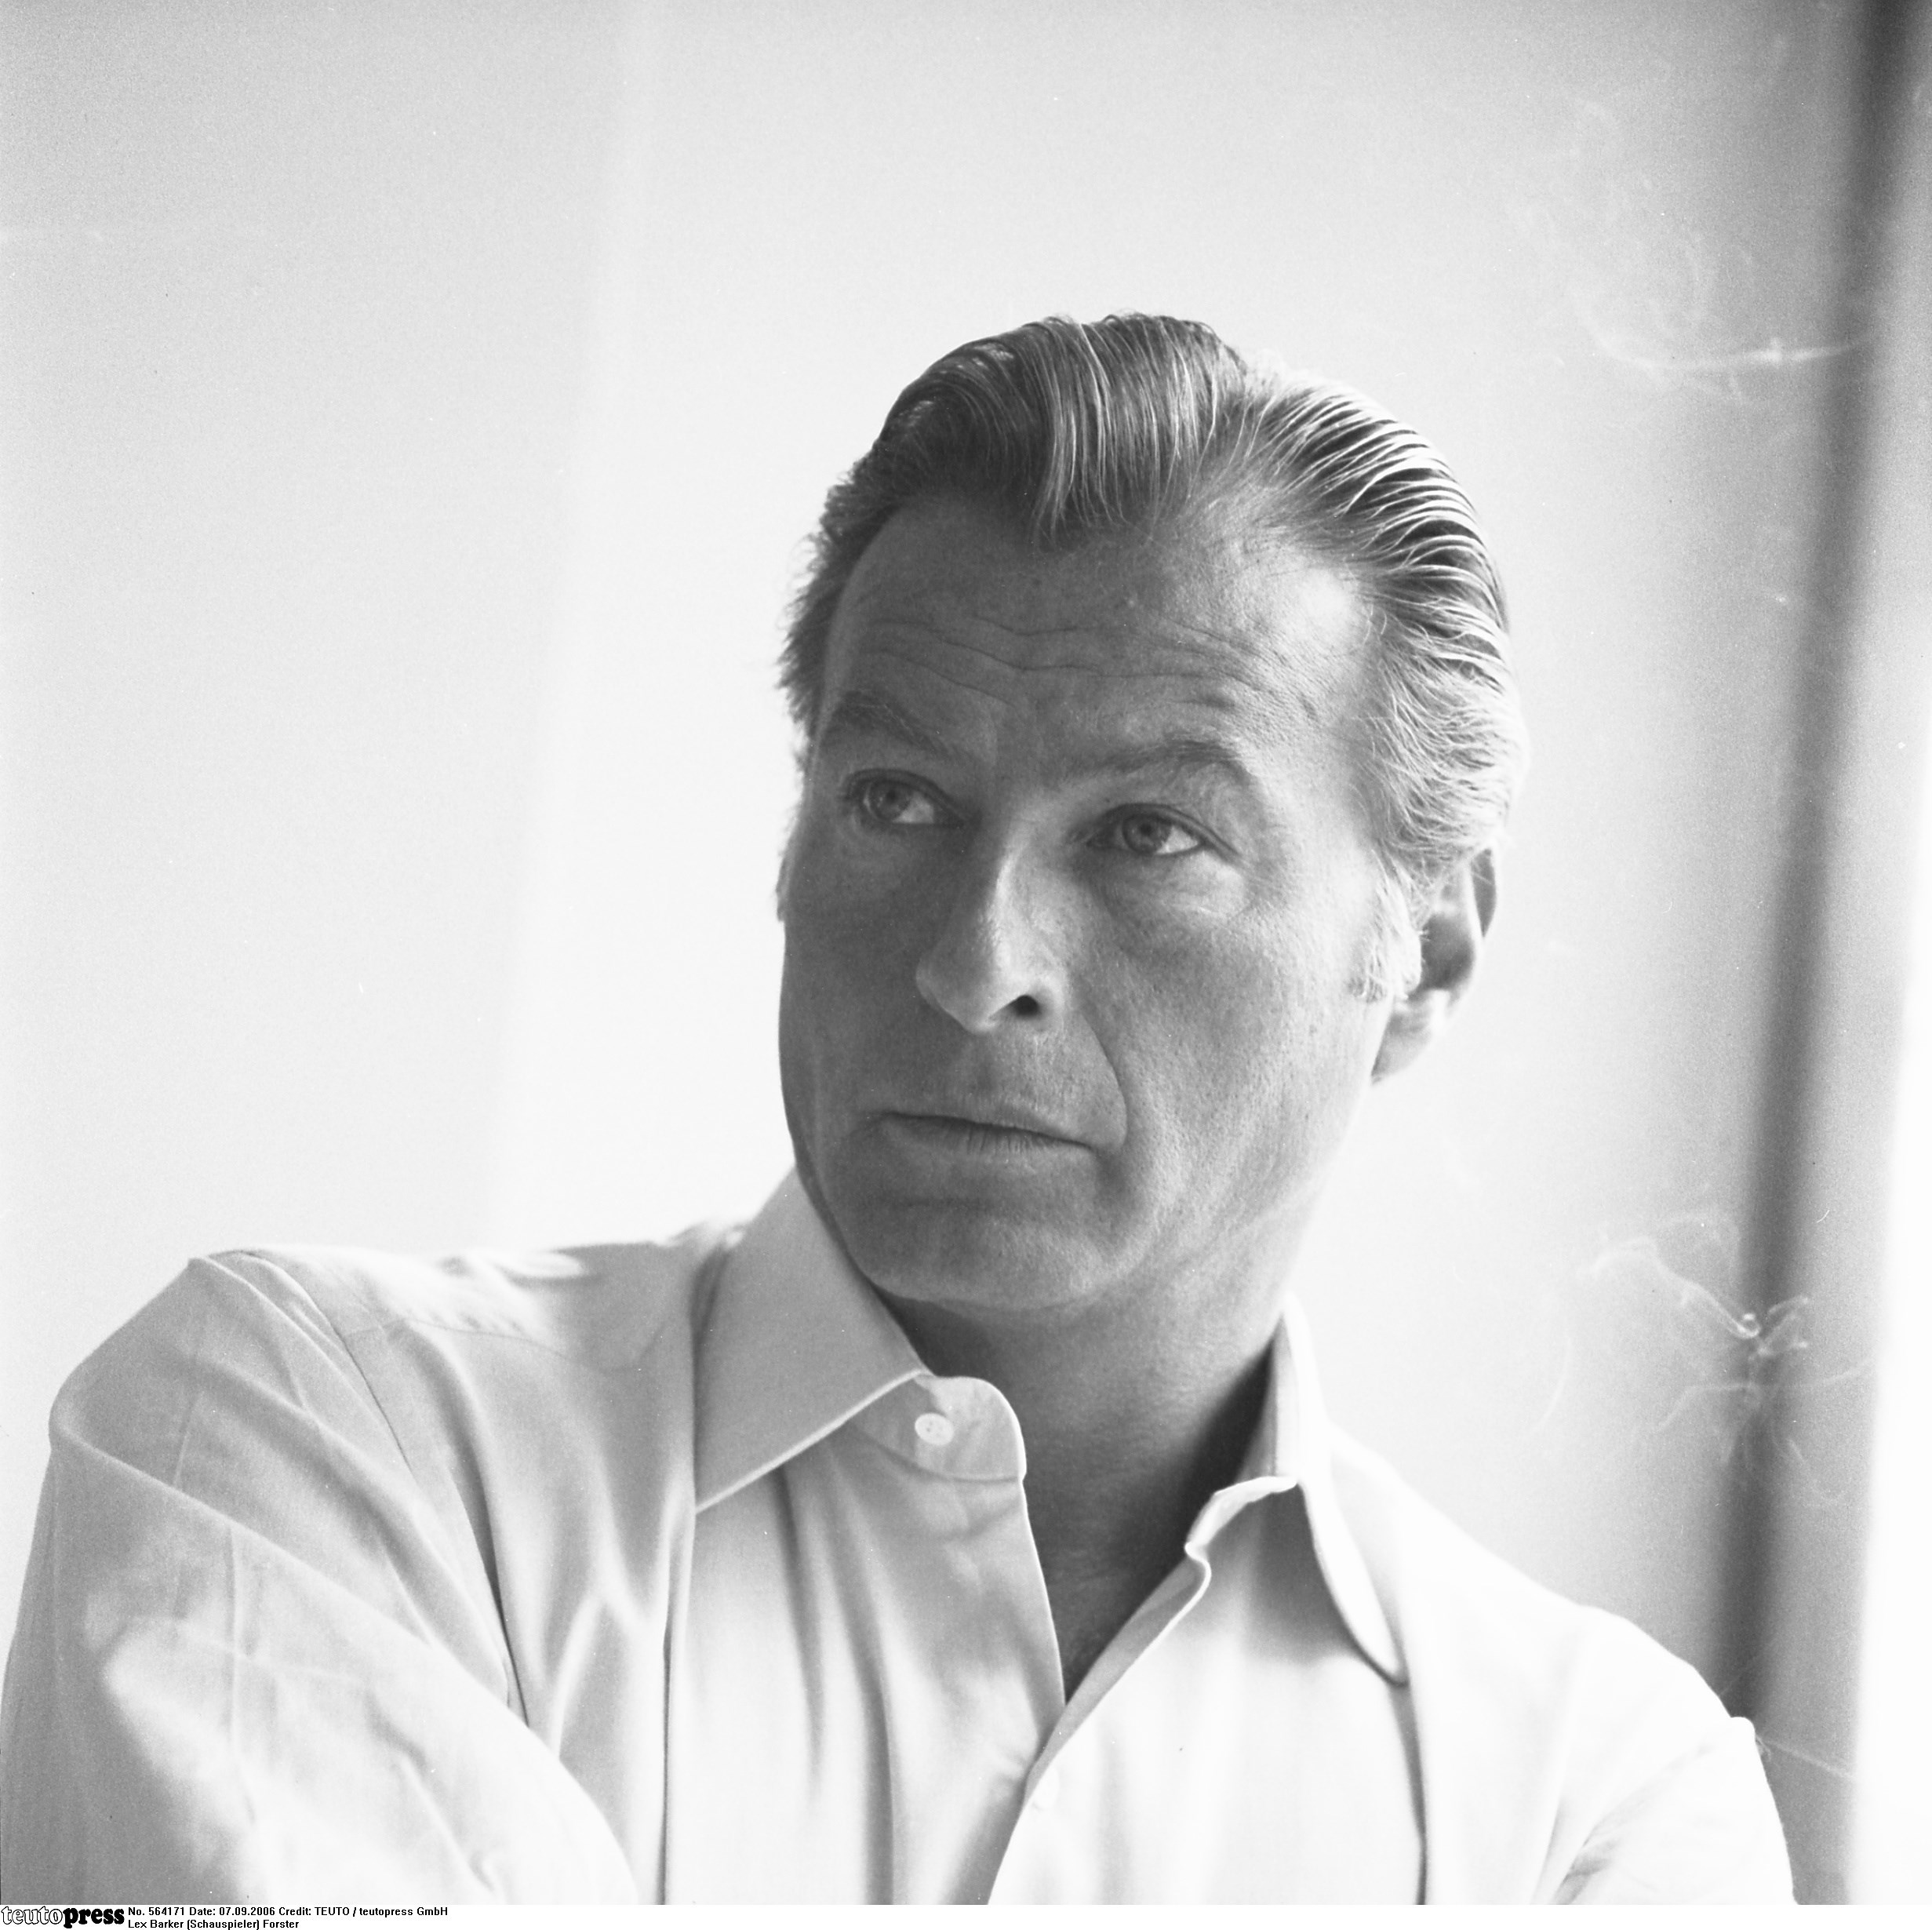 Lex Barker | Known people - famous people news and biographies